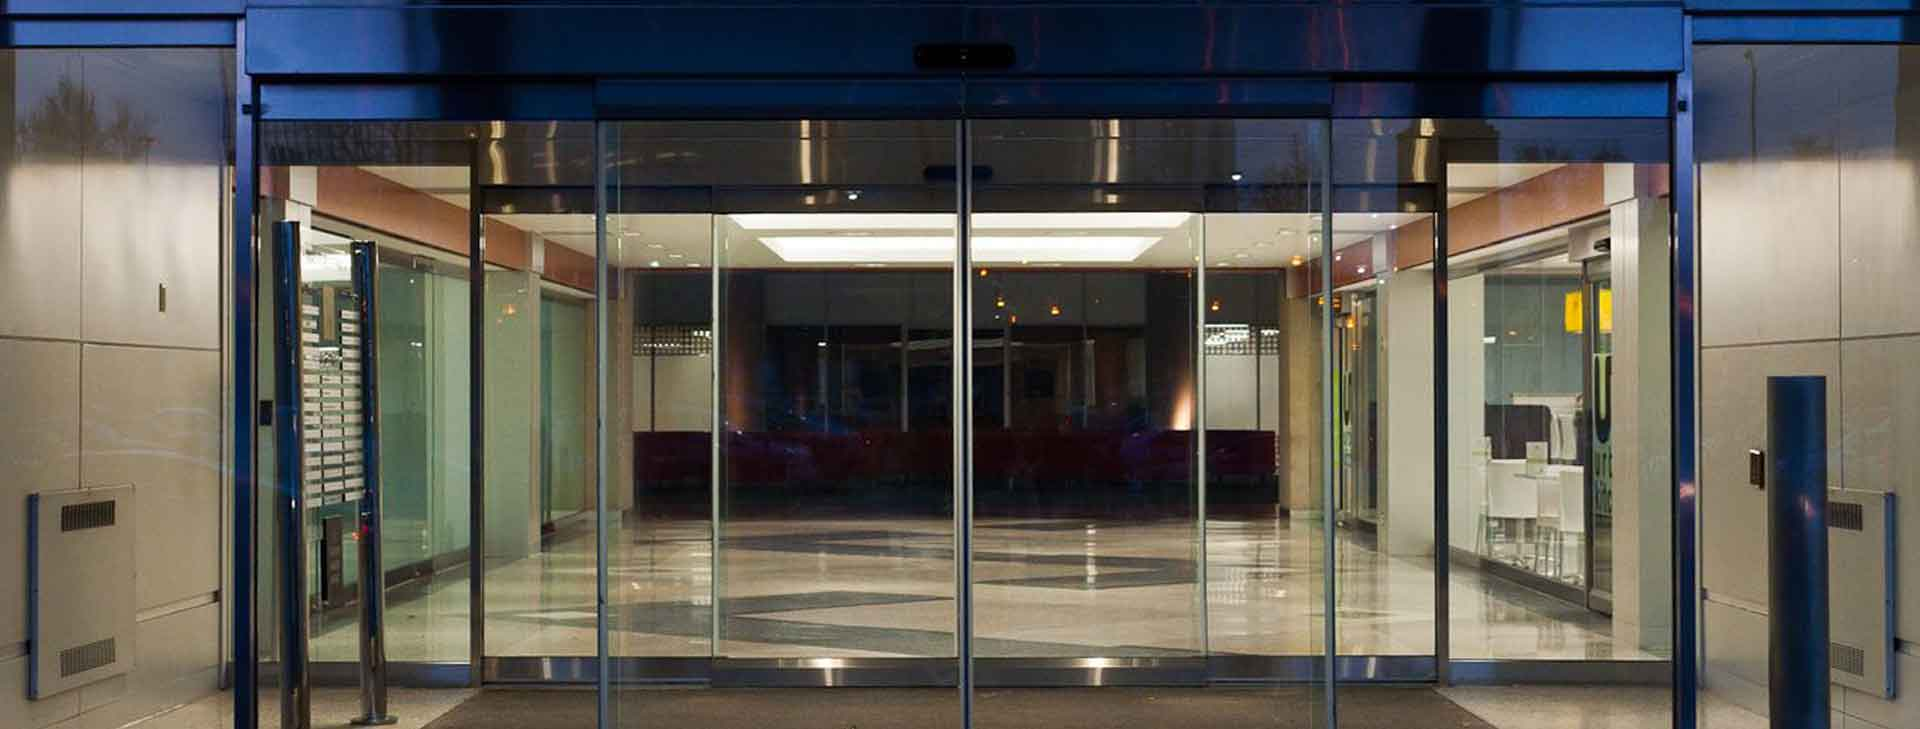 5 advantages of automatic glass doors in commercial spaces for Office glass door entrance designs